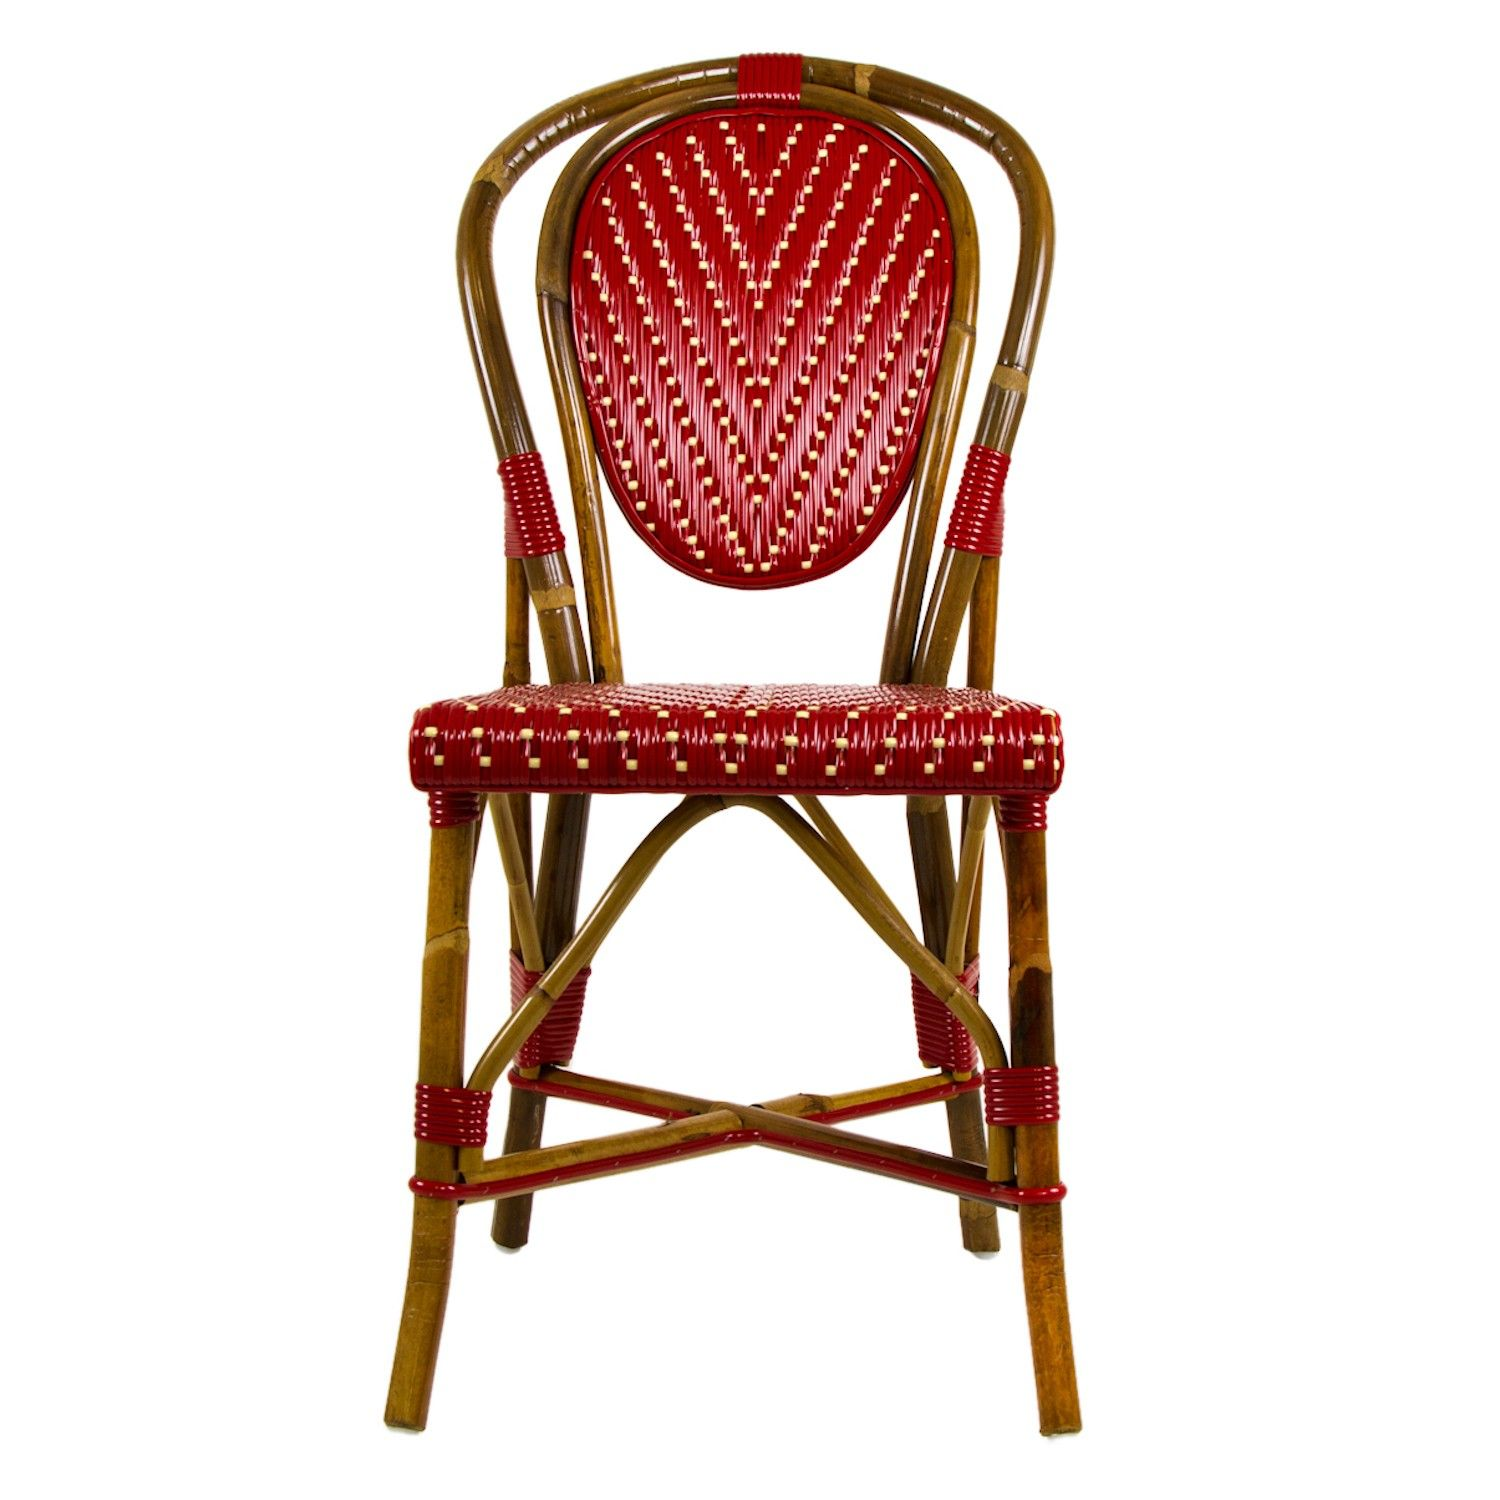 http://www.maison-midi.com/furniture/chairs/traditional-bistro ...